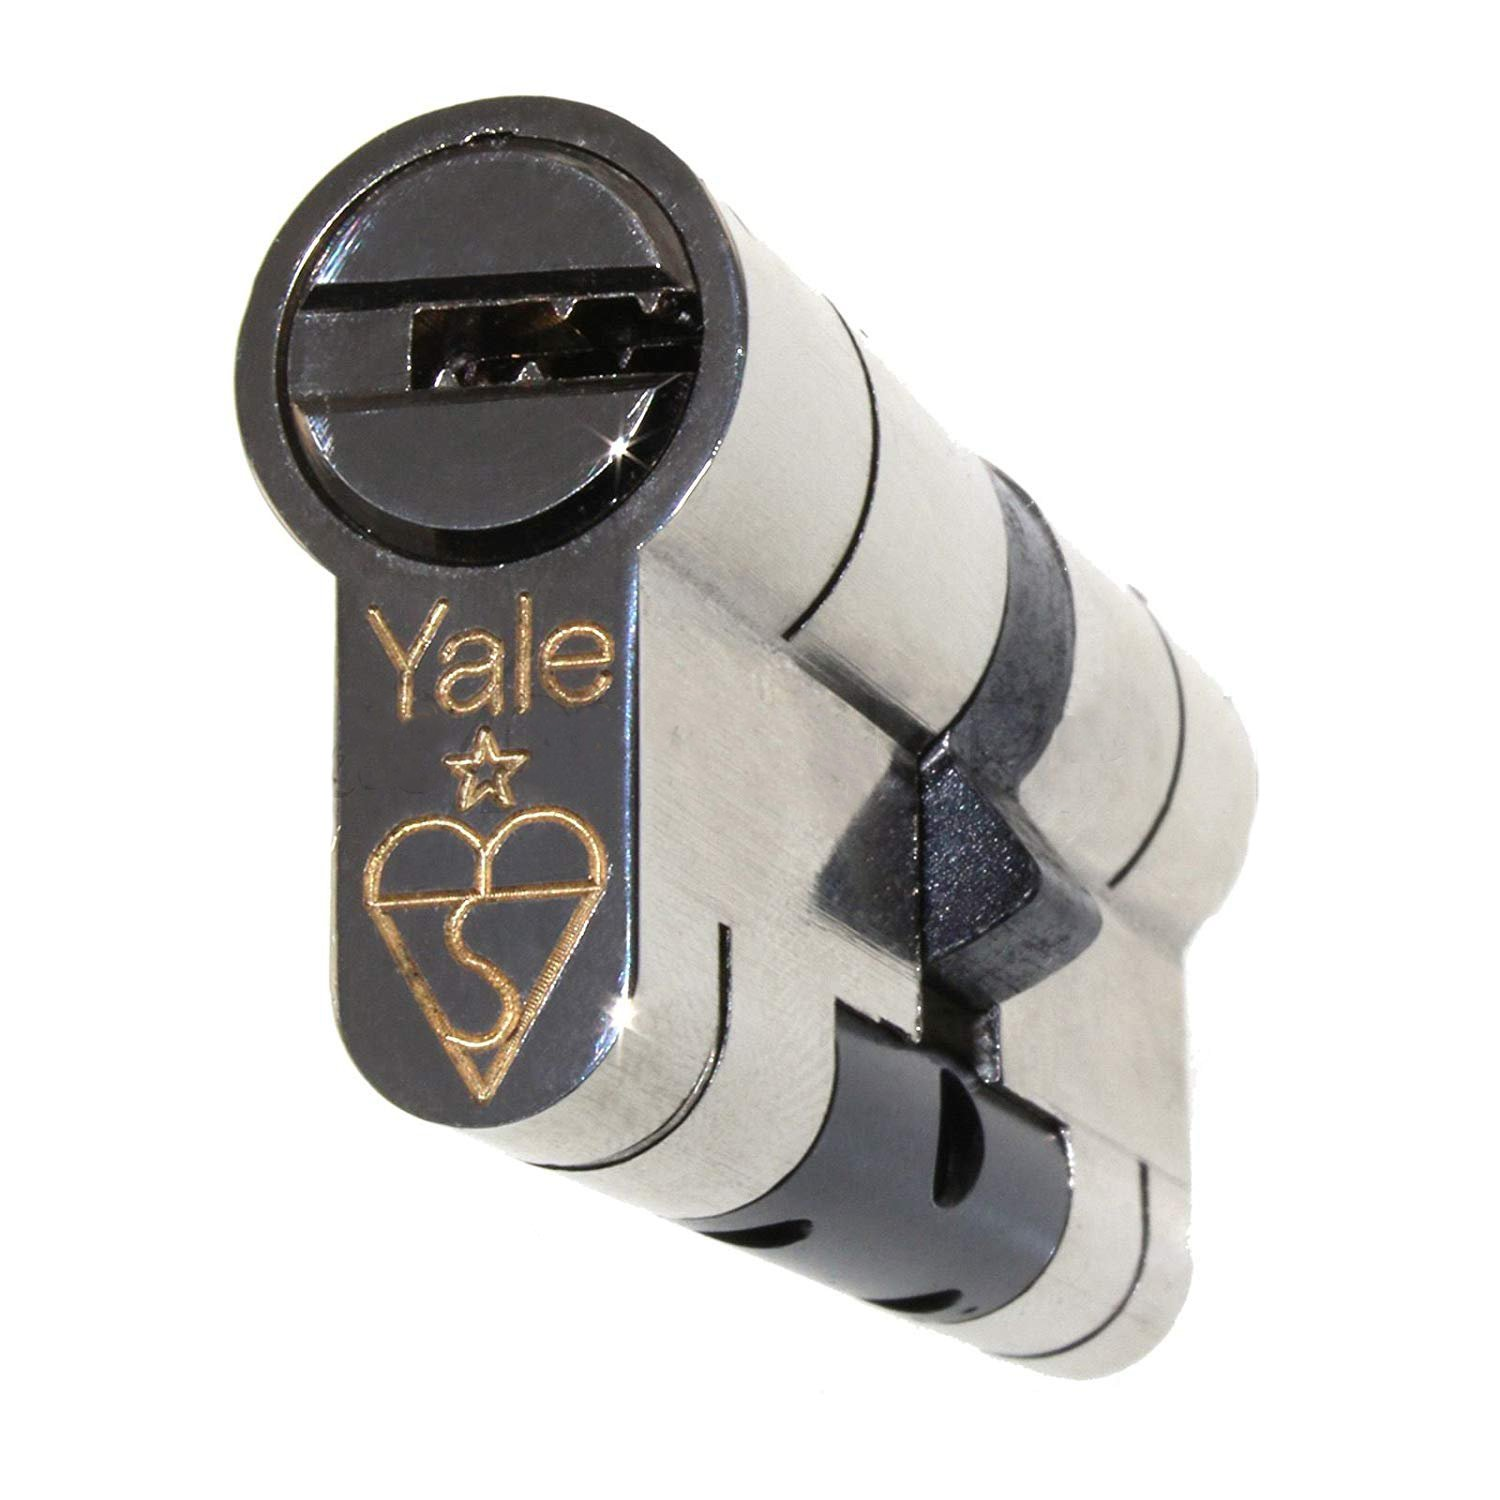 40/40 Nickel YALE Superior Euro Cylinder with 3 Keys Anti Snap / Bump / Pick / Drill / Pull High Security uPVC Composite Door Barrel Profile Lock by Yale